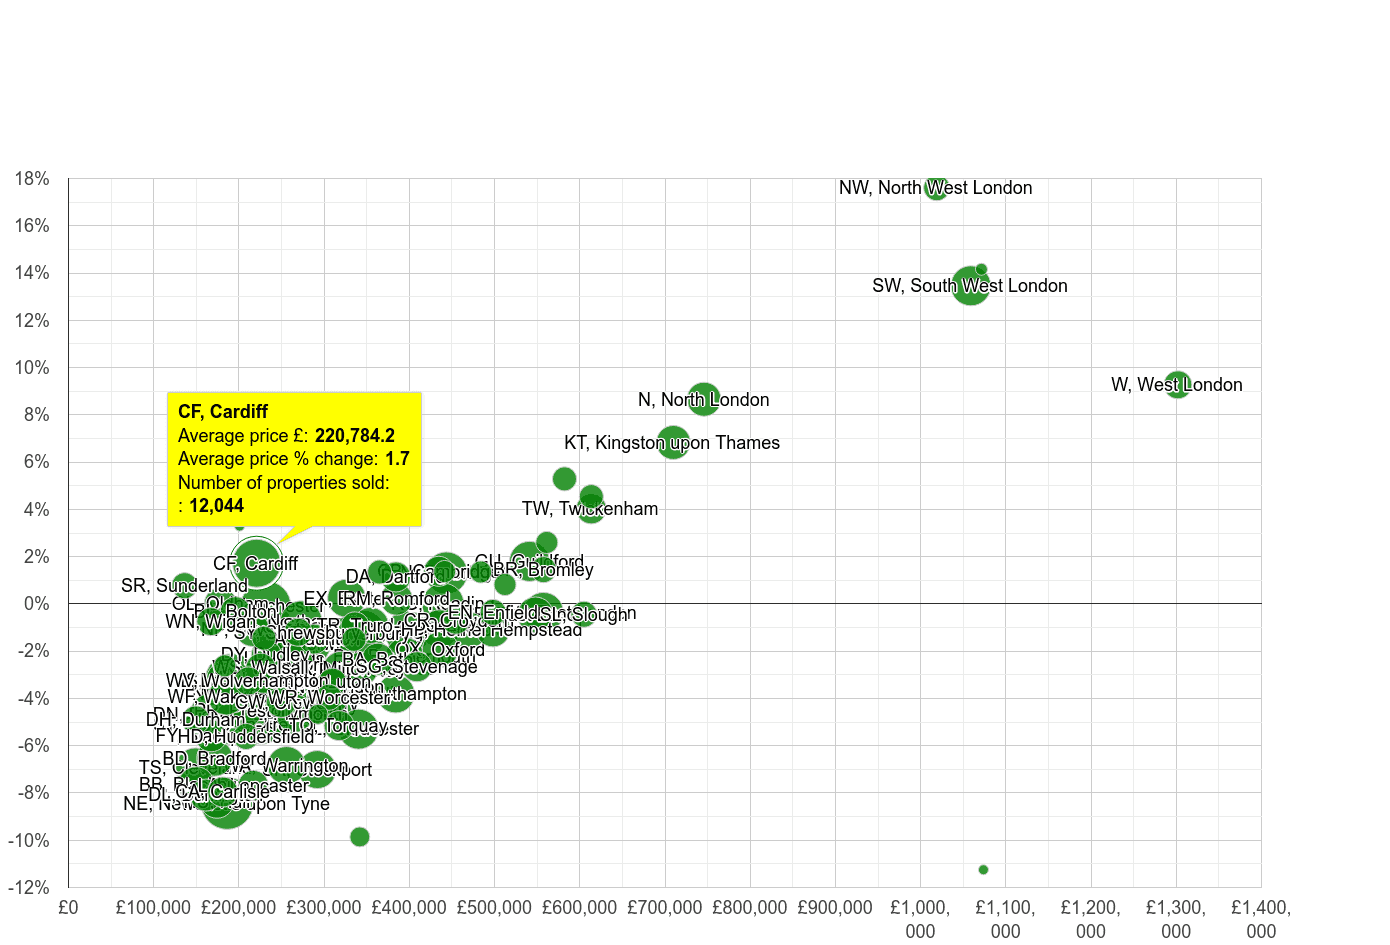 Cardiff house prices compared to other areas